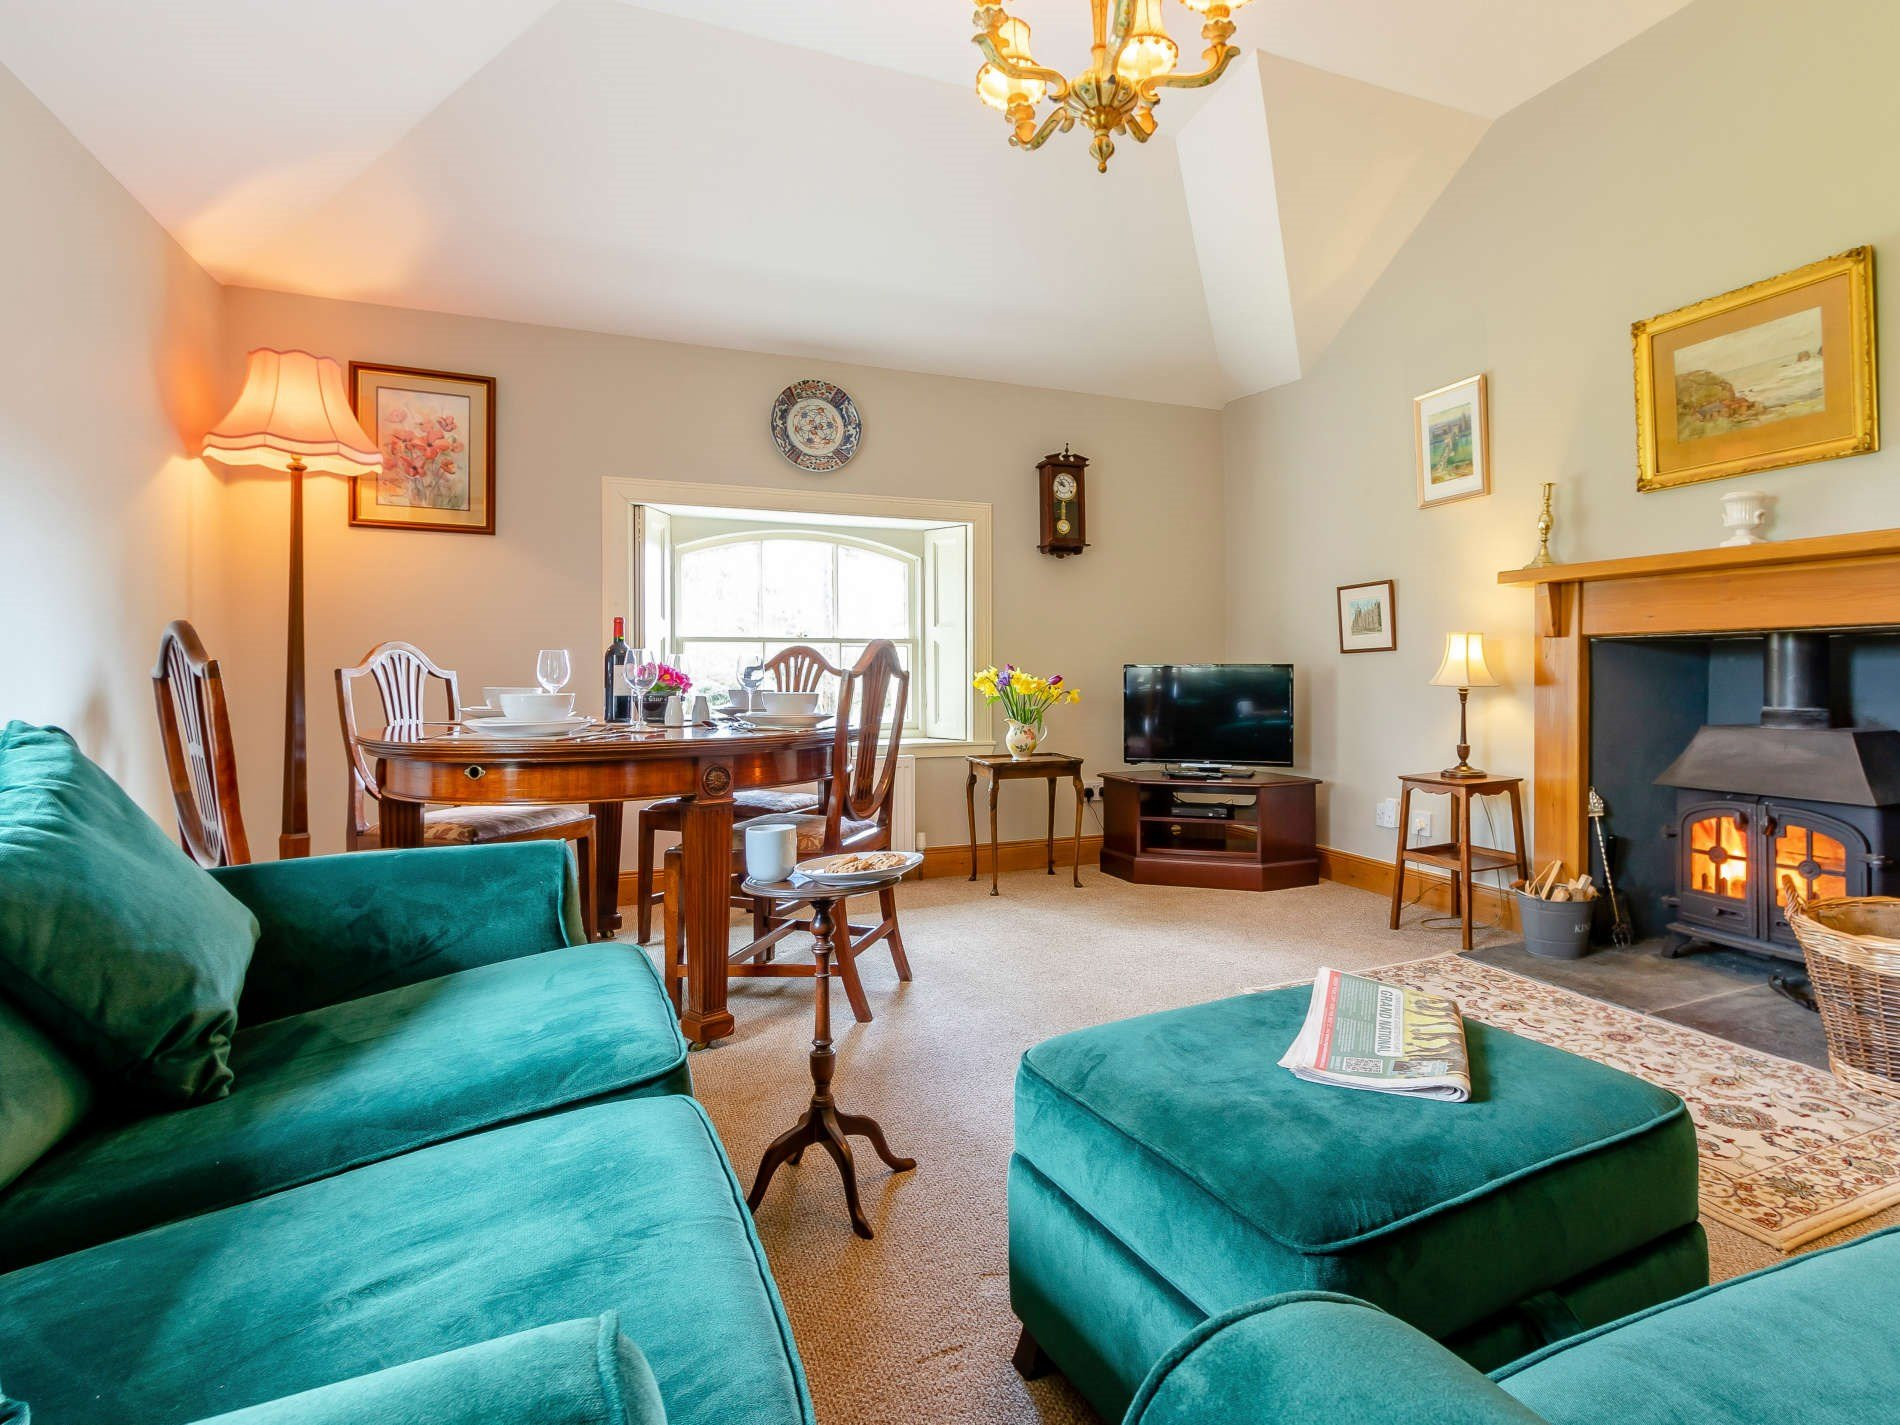 2 Bedroom Cottage in Cupar, Perthshire, Angus & Fife